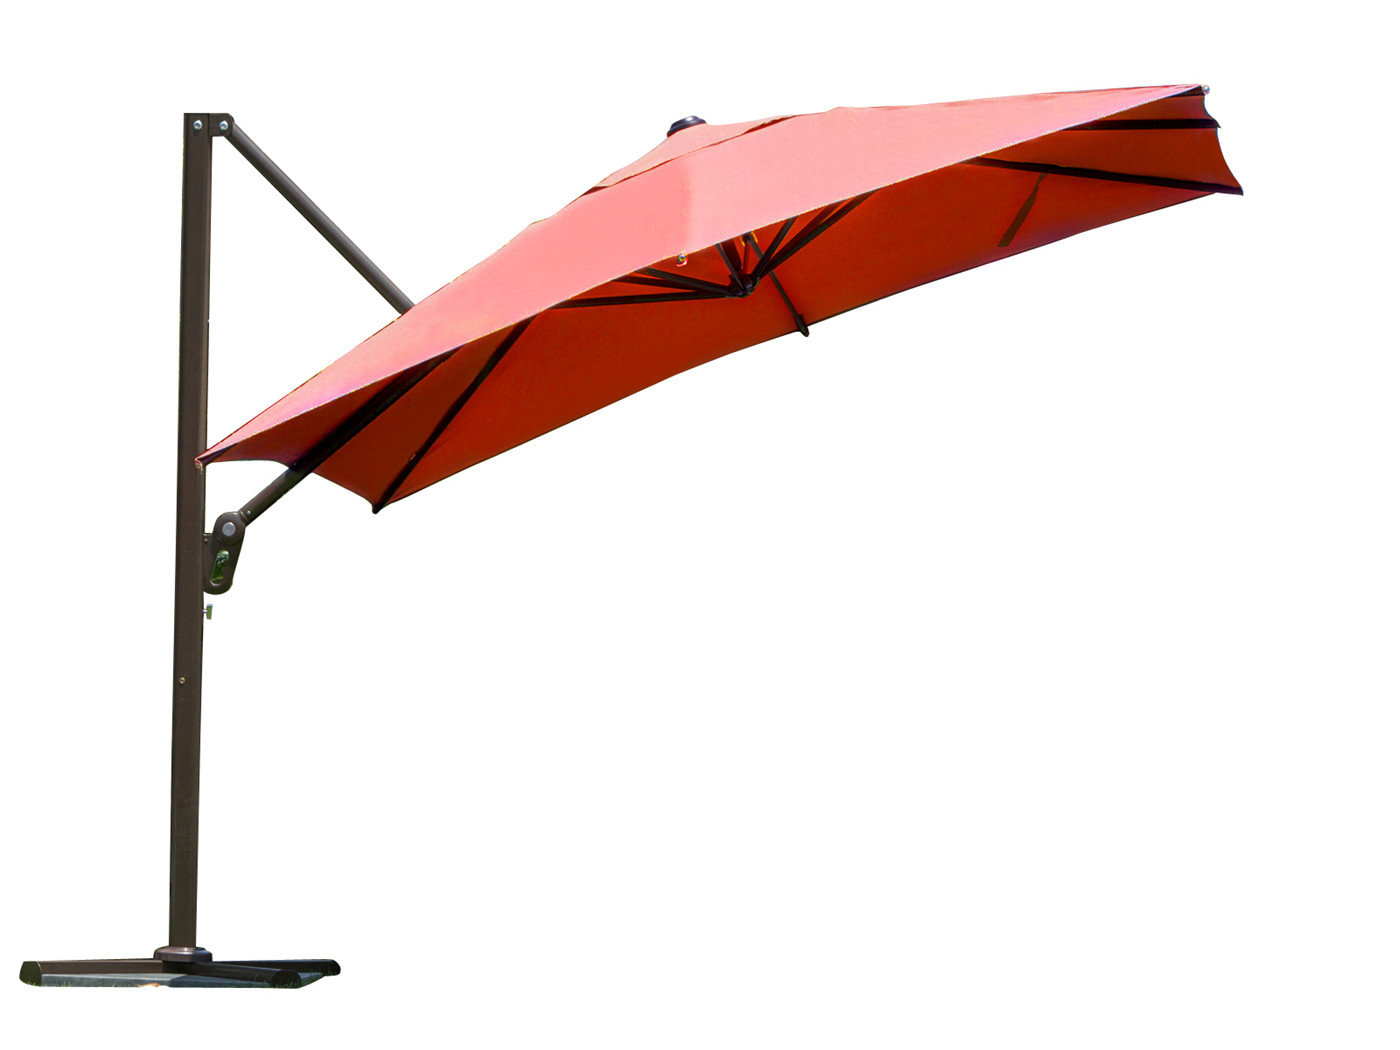 9' Square Cantilever Umbrella Throughout Well Known Justis Cantilever Umbrellas (View 12 of 20)